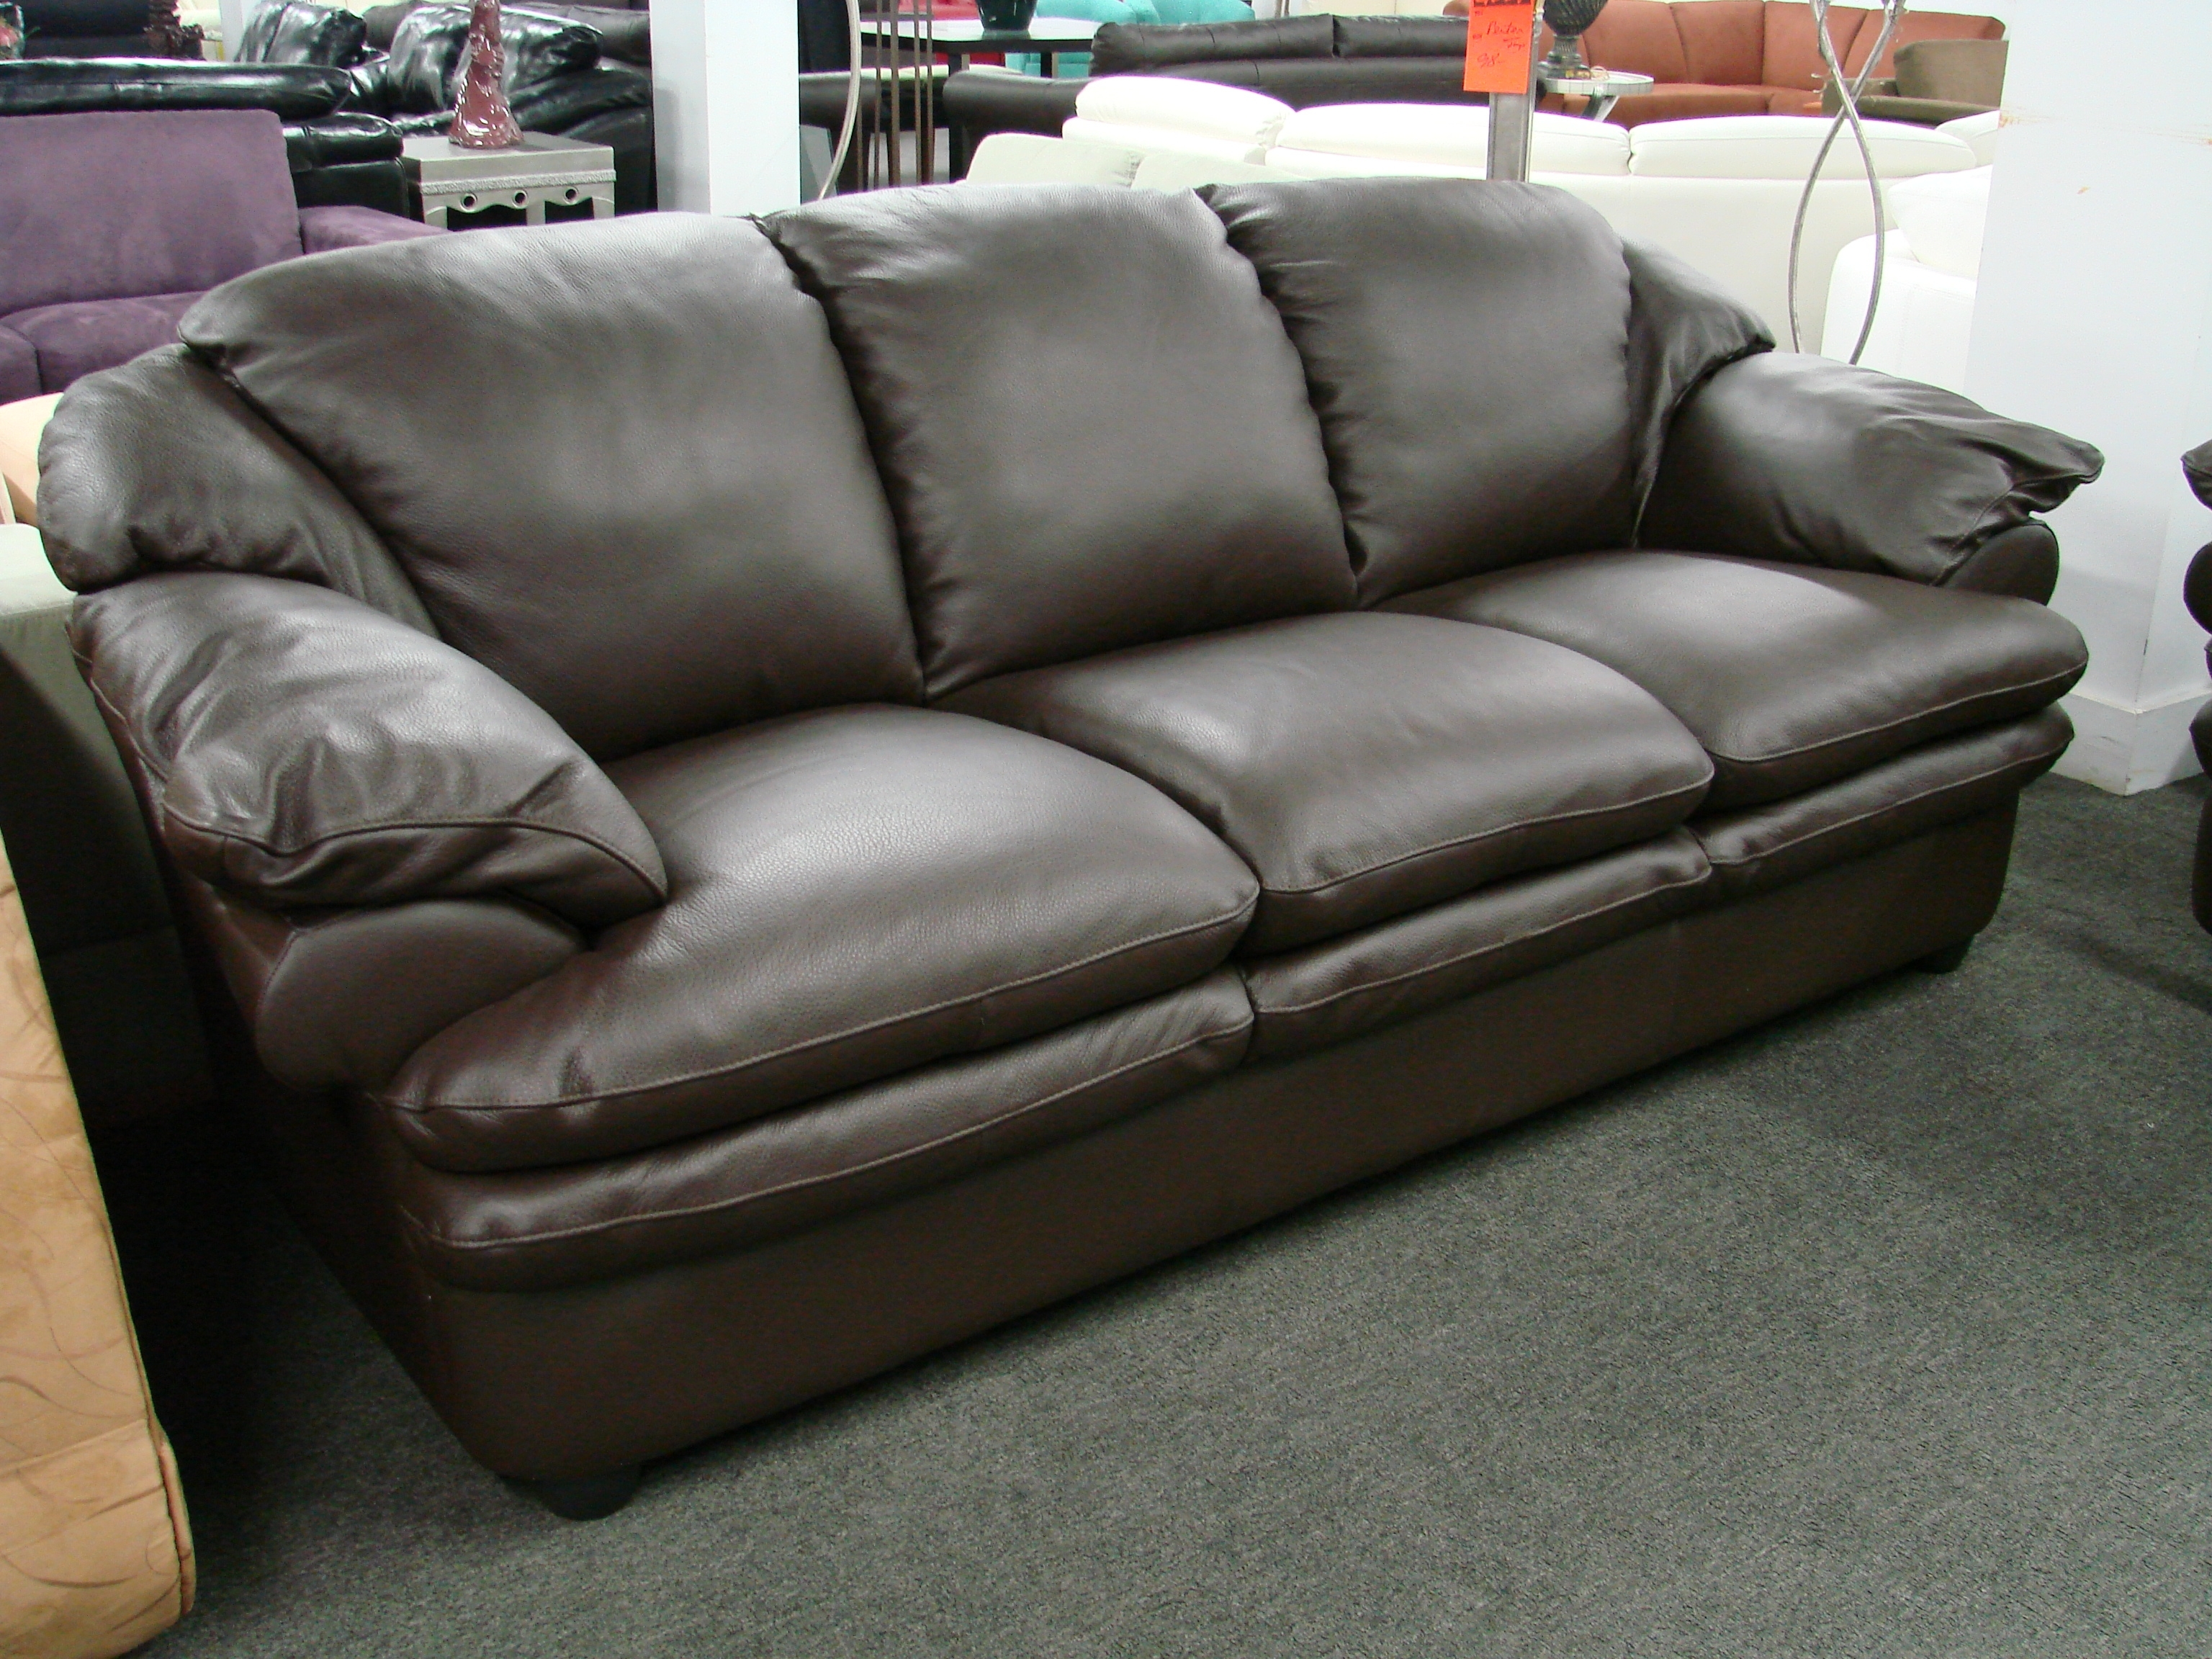 Leather Sectional Sofa With Recliners Sofas Ottawa For Sale Couch in Ottawa Sale Sectional Sofas (Image 4 of 10)